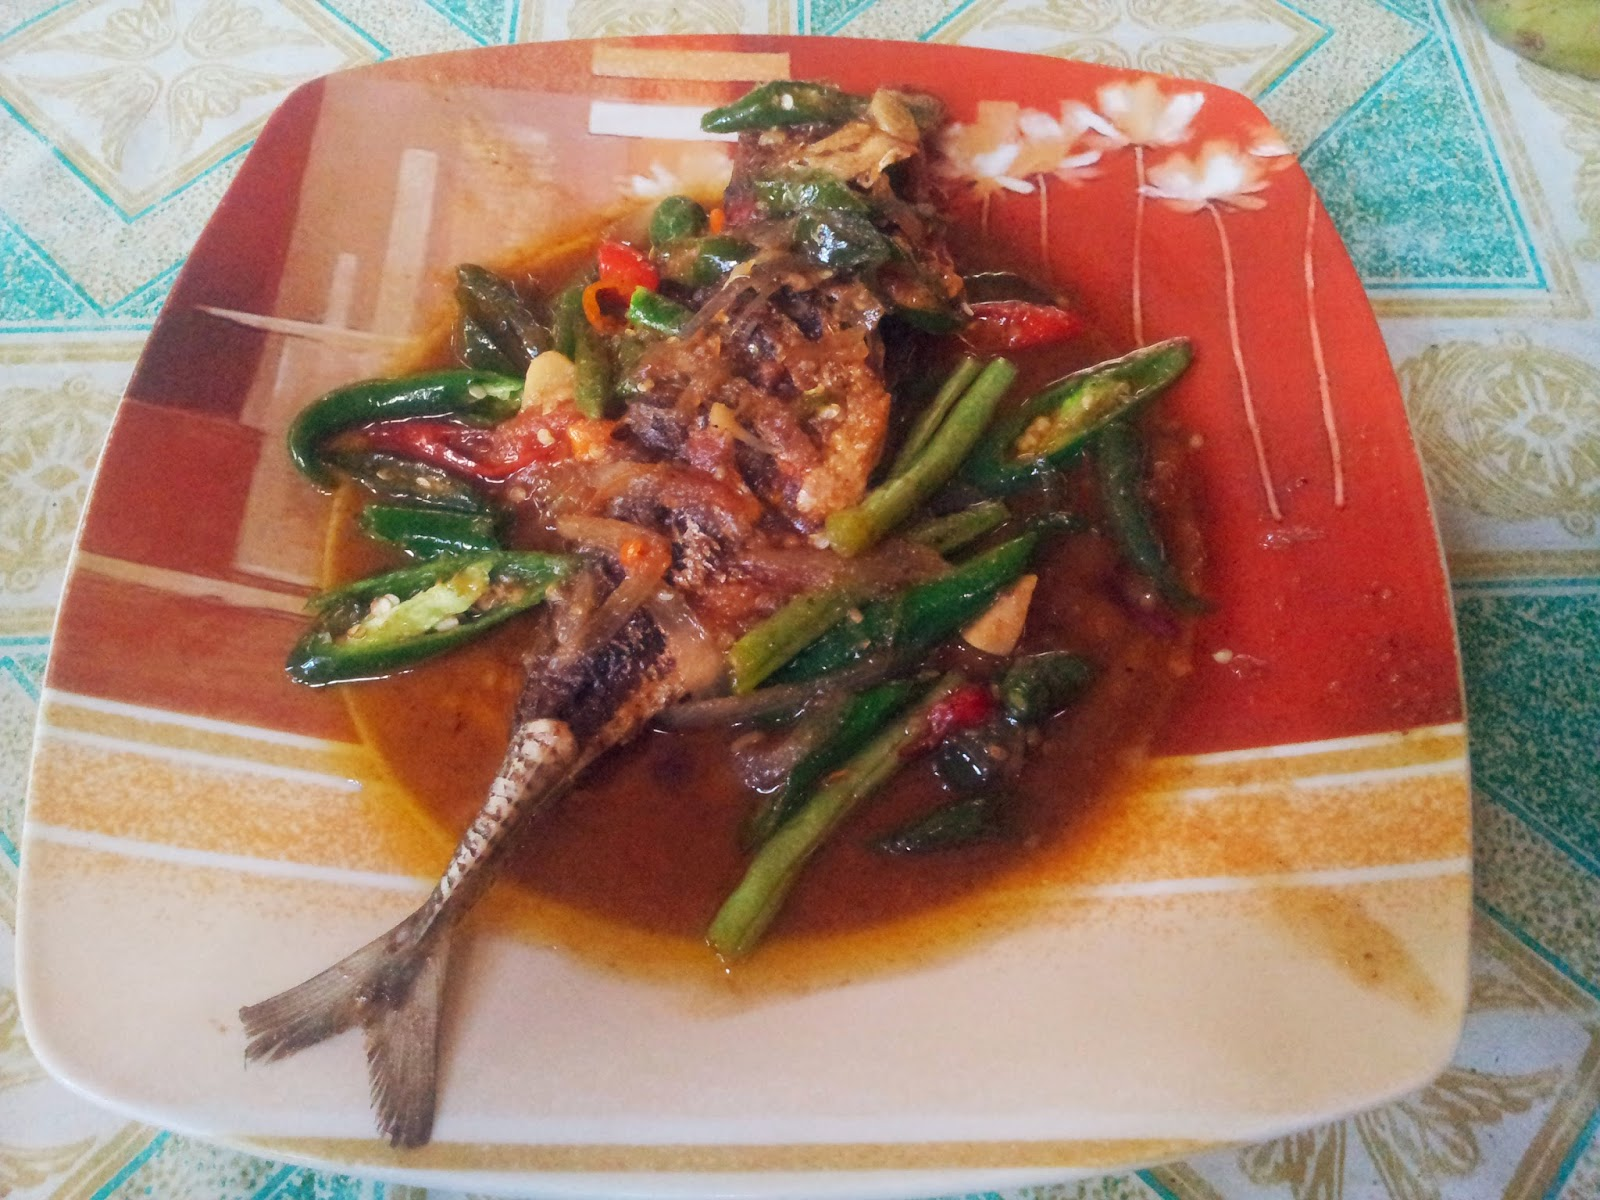 Skipjack tuna with sour and sweet sauce at Goa Cemara